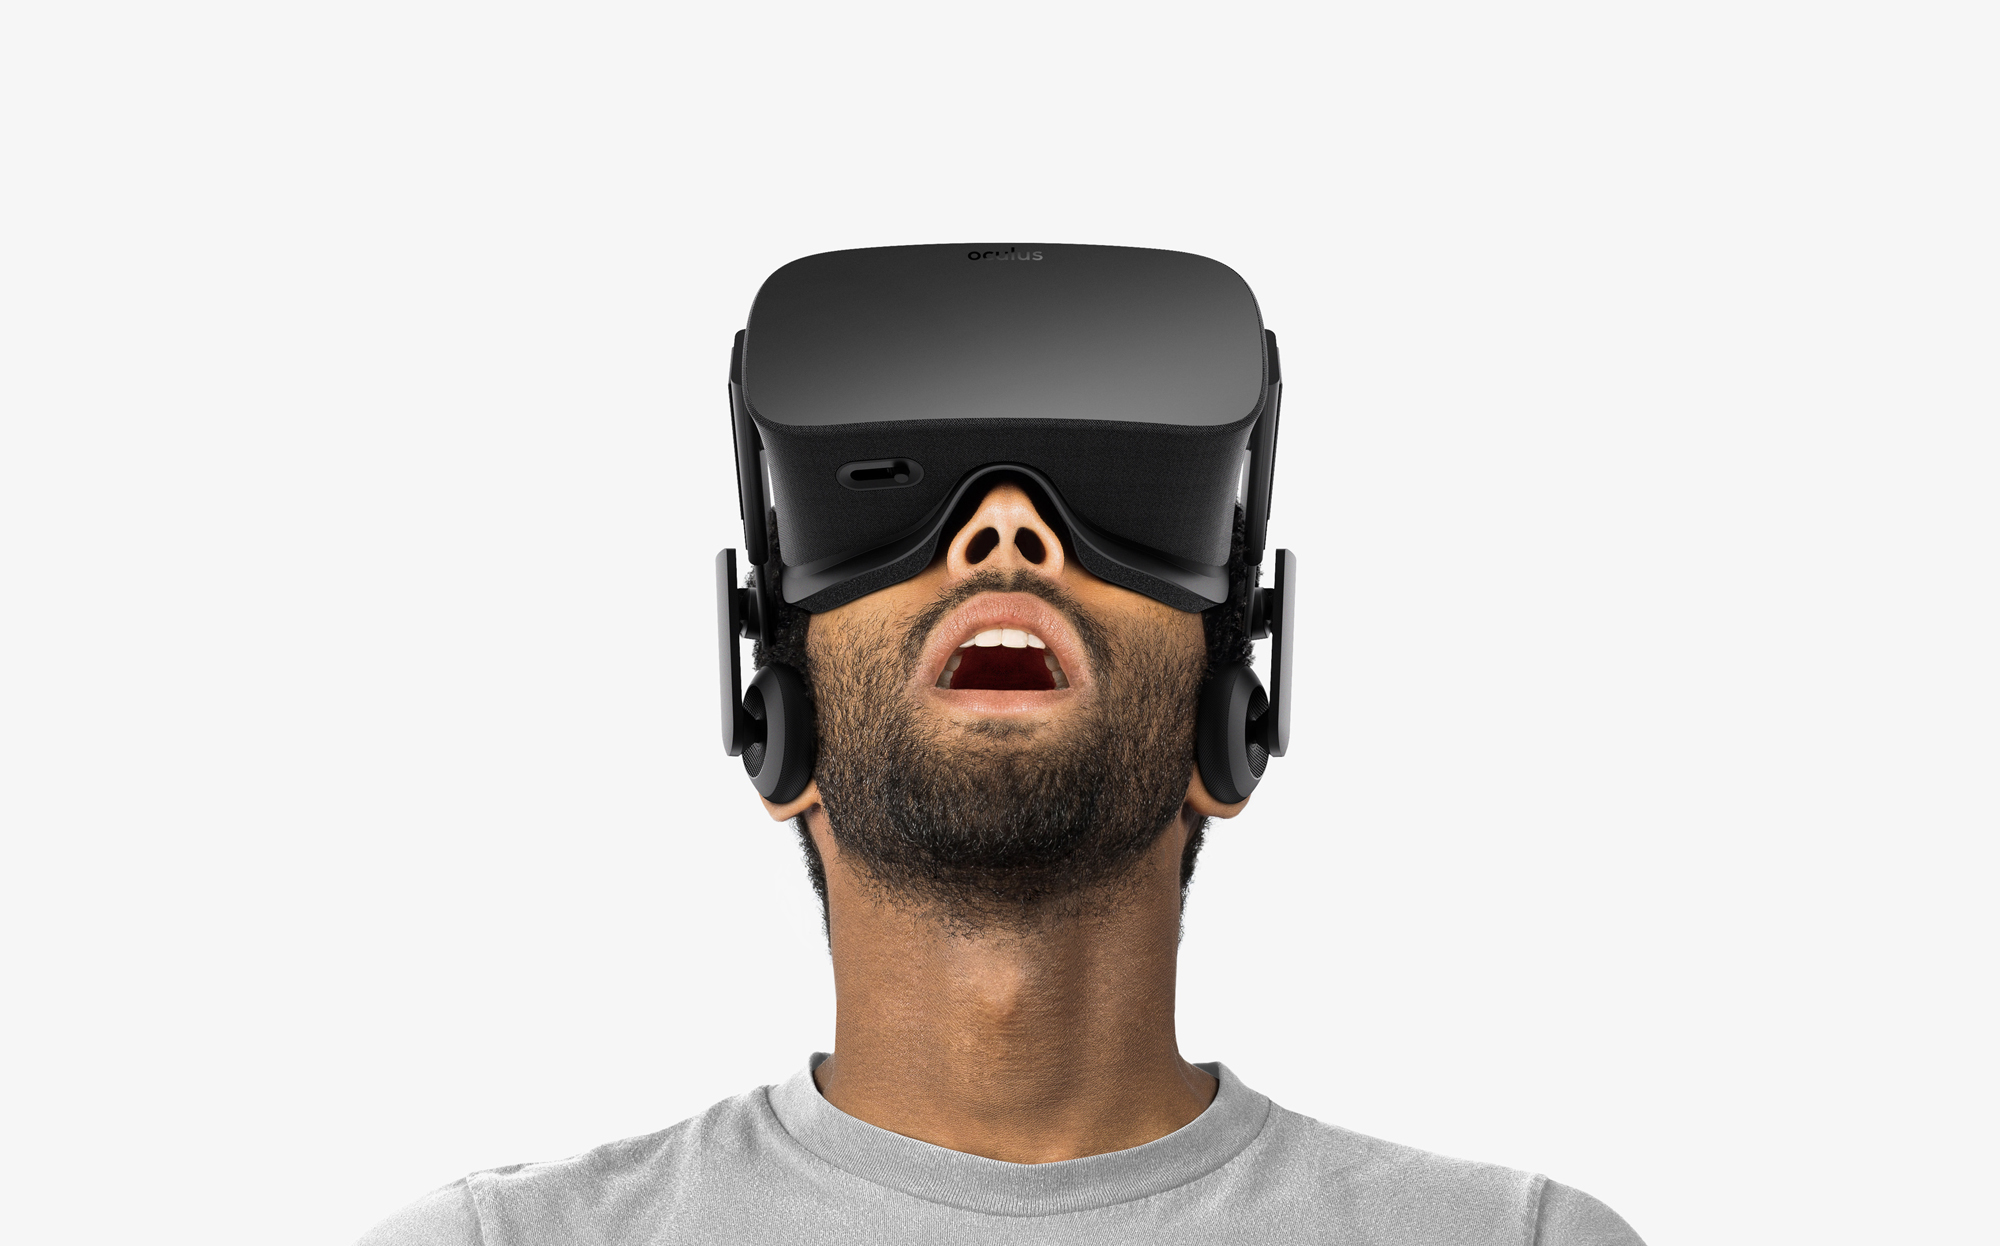 using Oculus VR